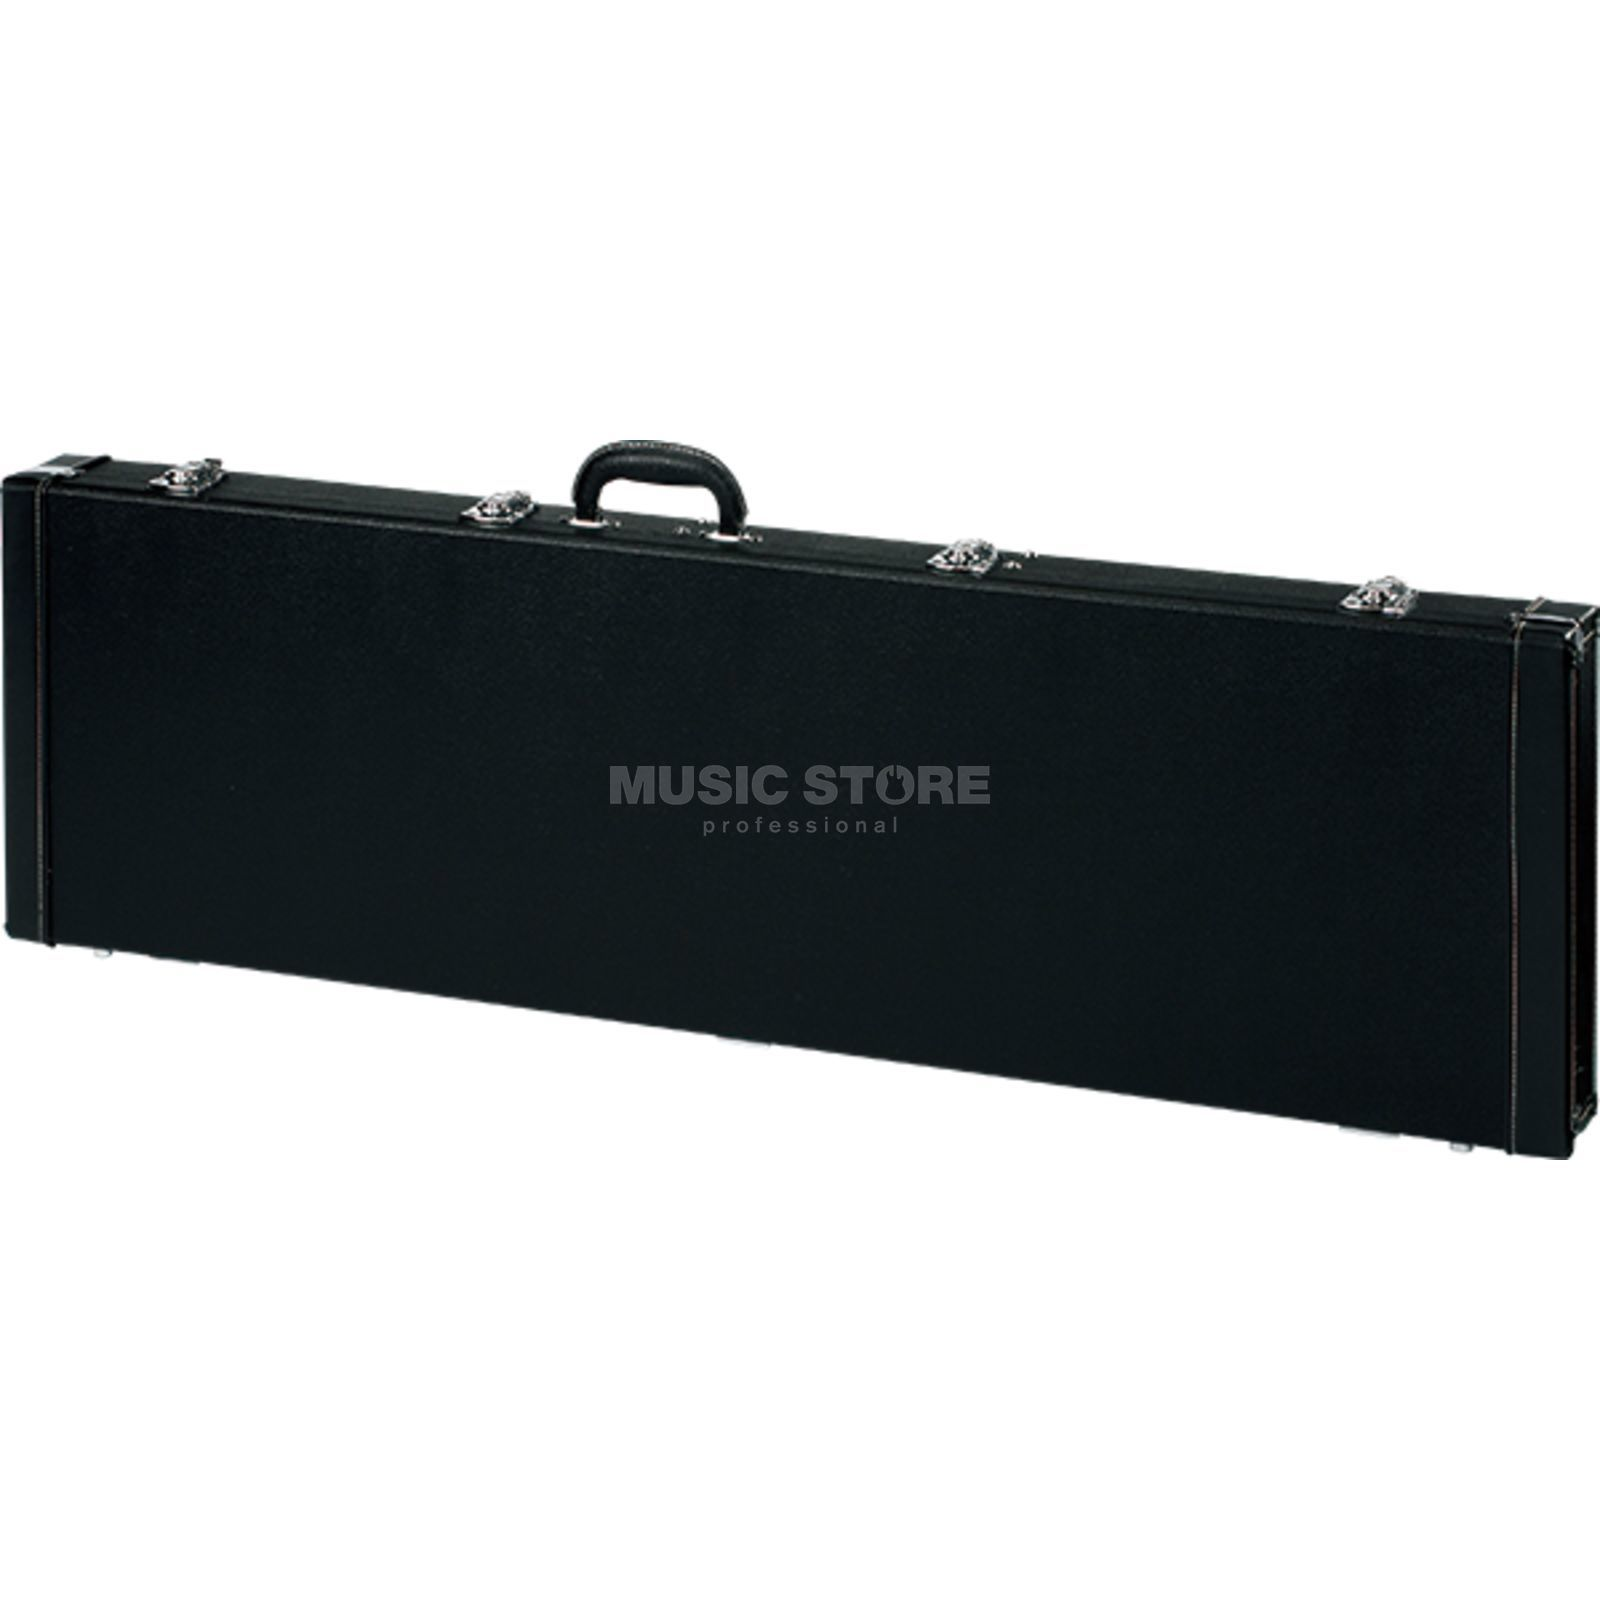 Ibanez WB200C Bass Case Product Image